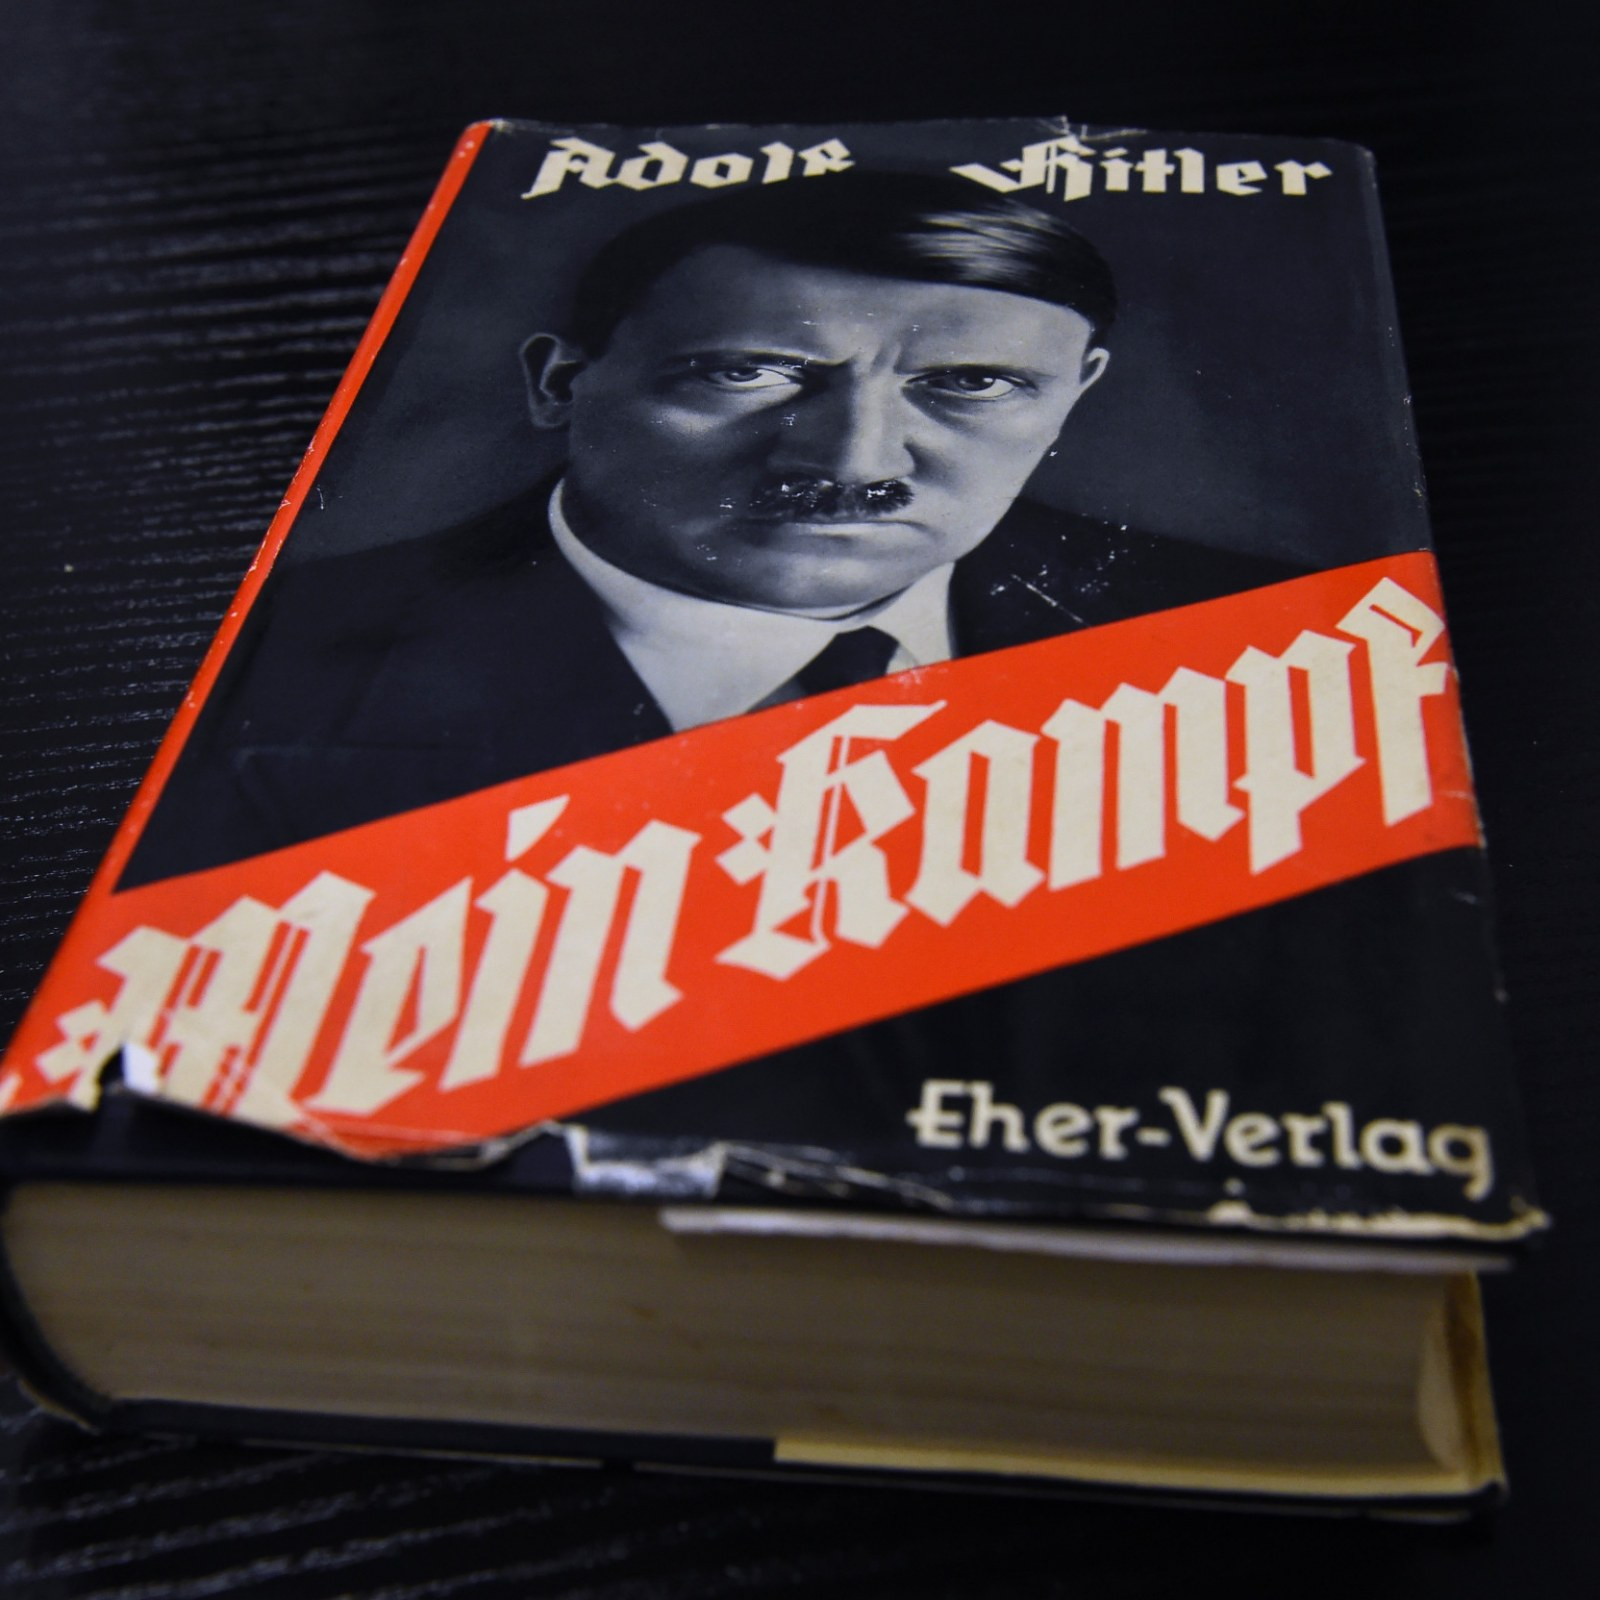 Amazon, Walmart, Barnes & Noble Found Selling Hitler's 'Mein